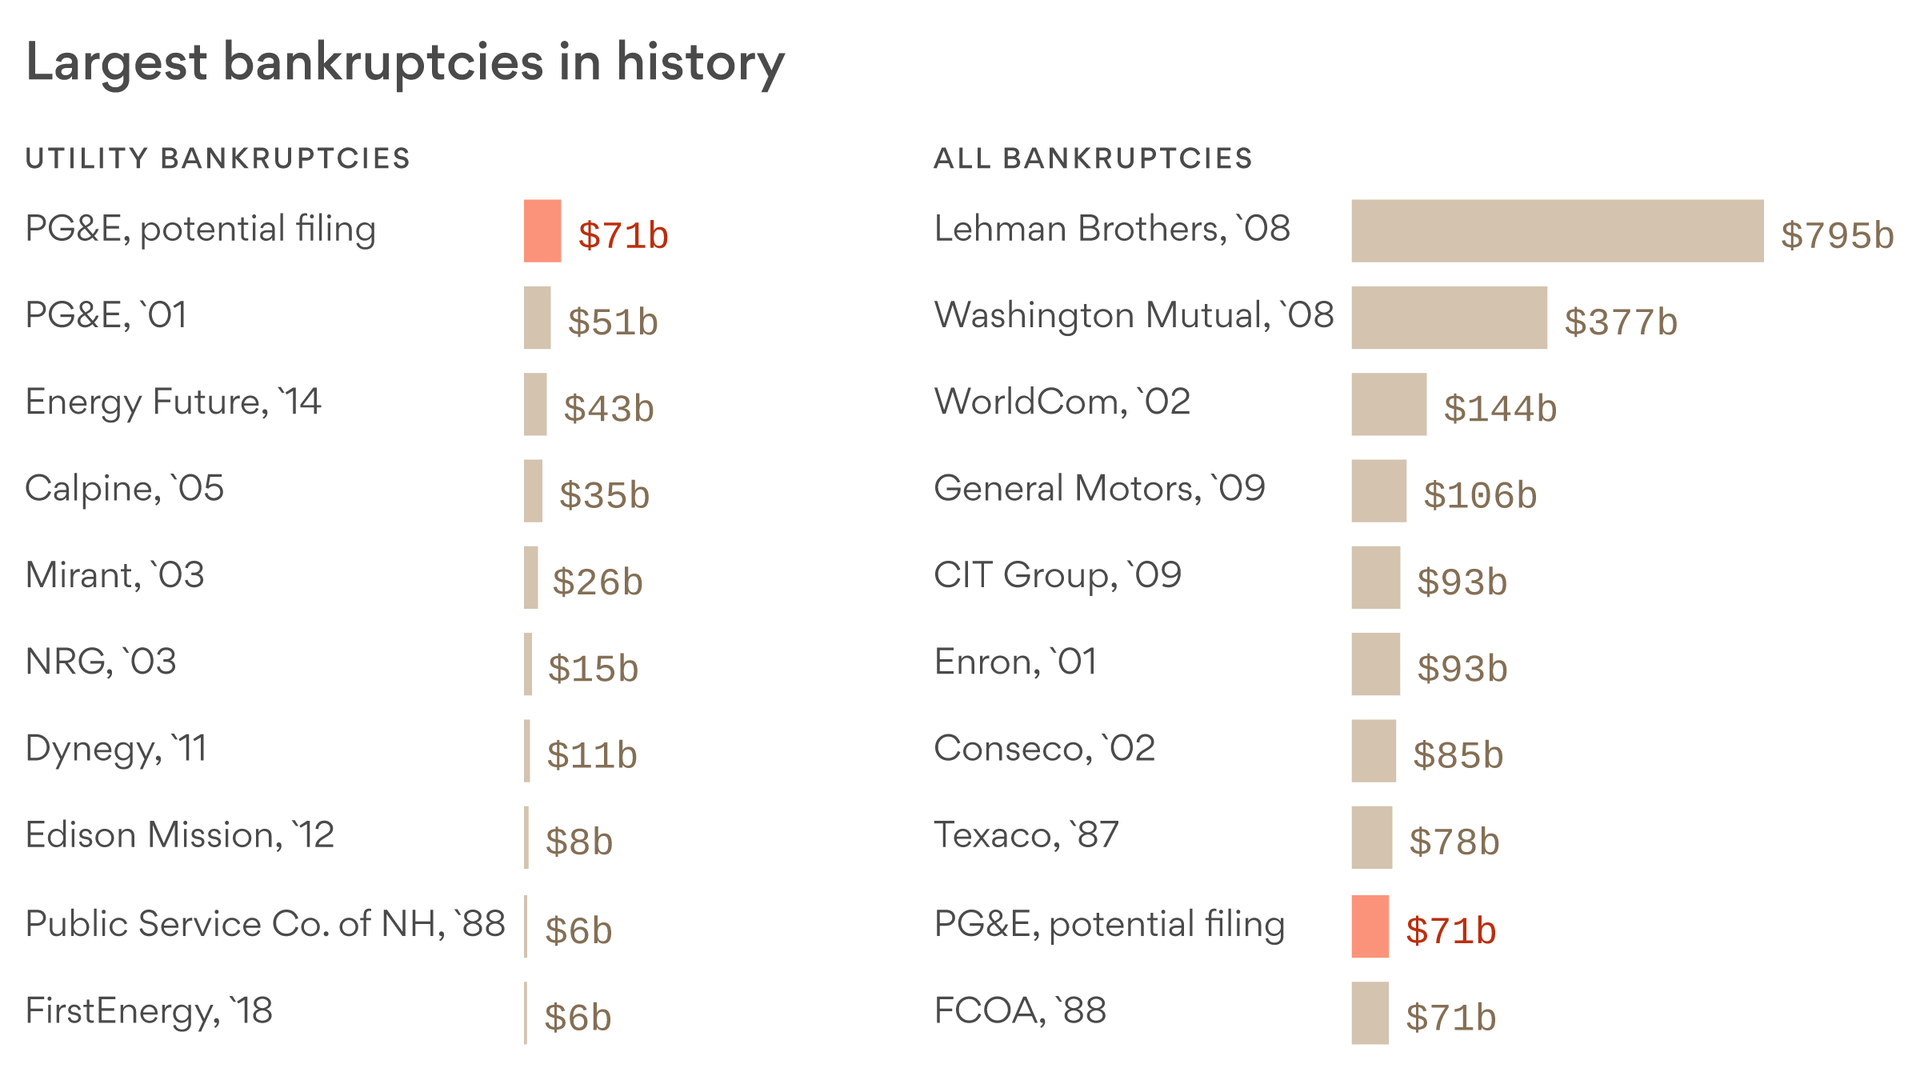 PG&E's planned bankruptcy filing would be the ninth-largest since at least the mid-1980s